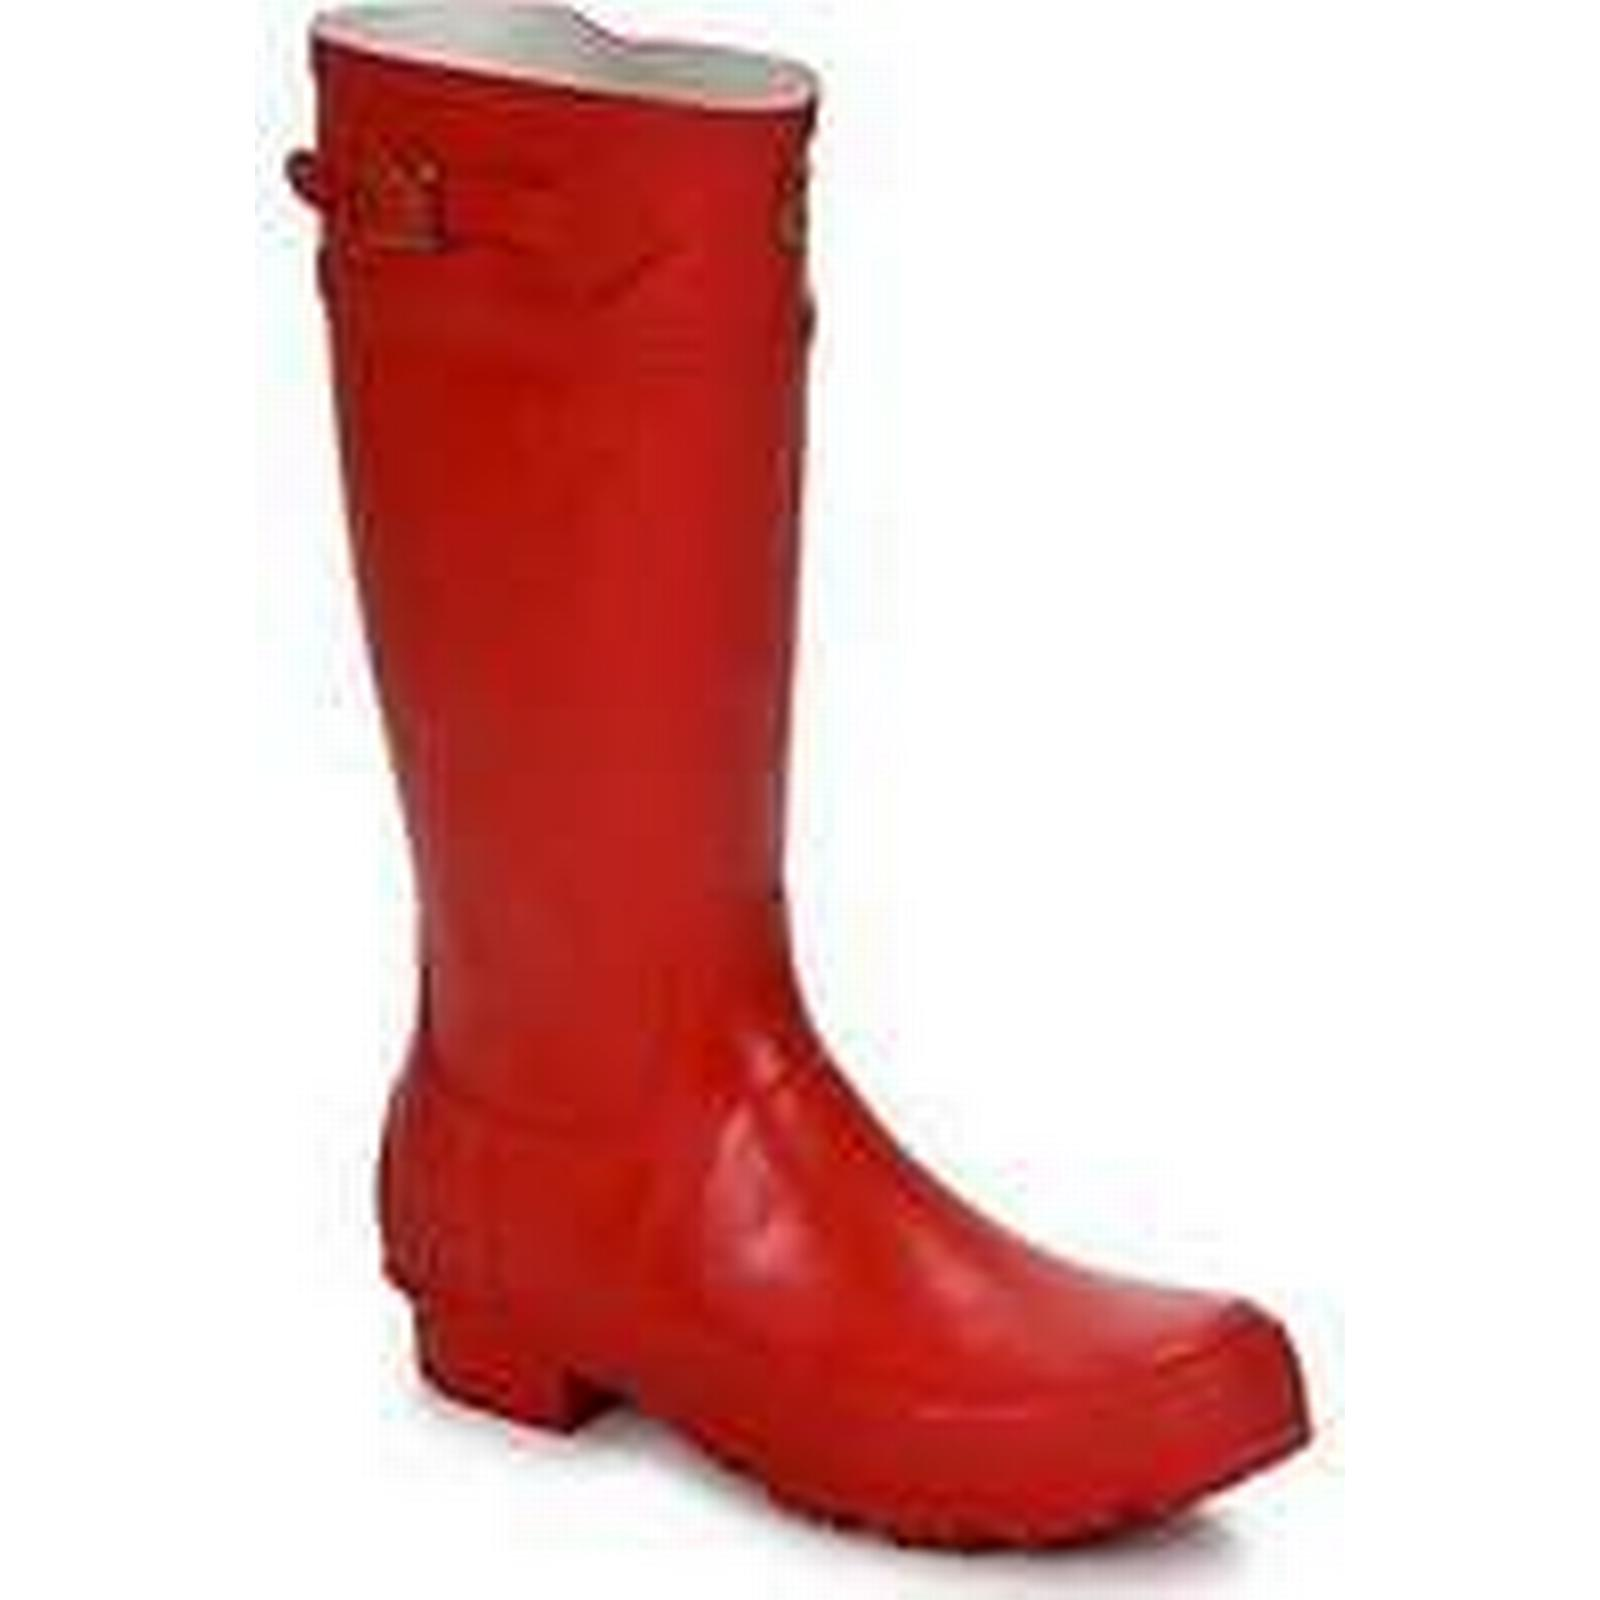 Spartoo.co.uk Superga 745 Boots RBRU WELLIES women's Wellington Boots 745 in Red 441419